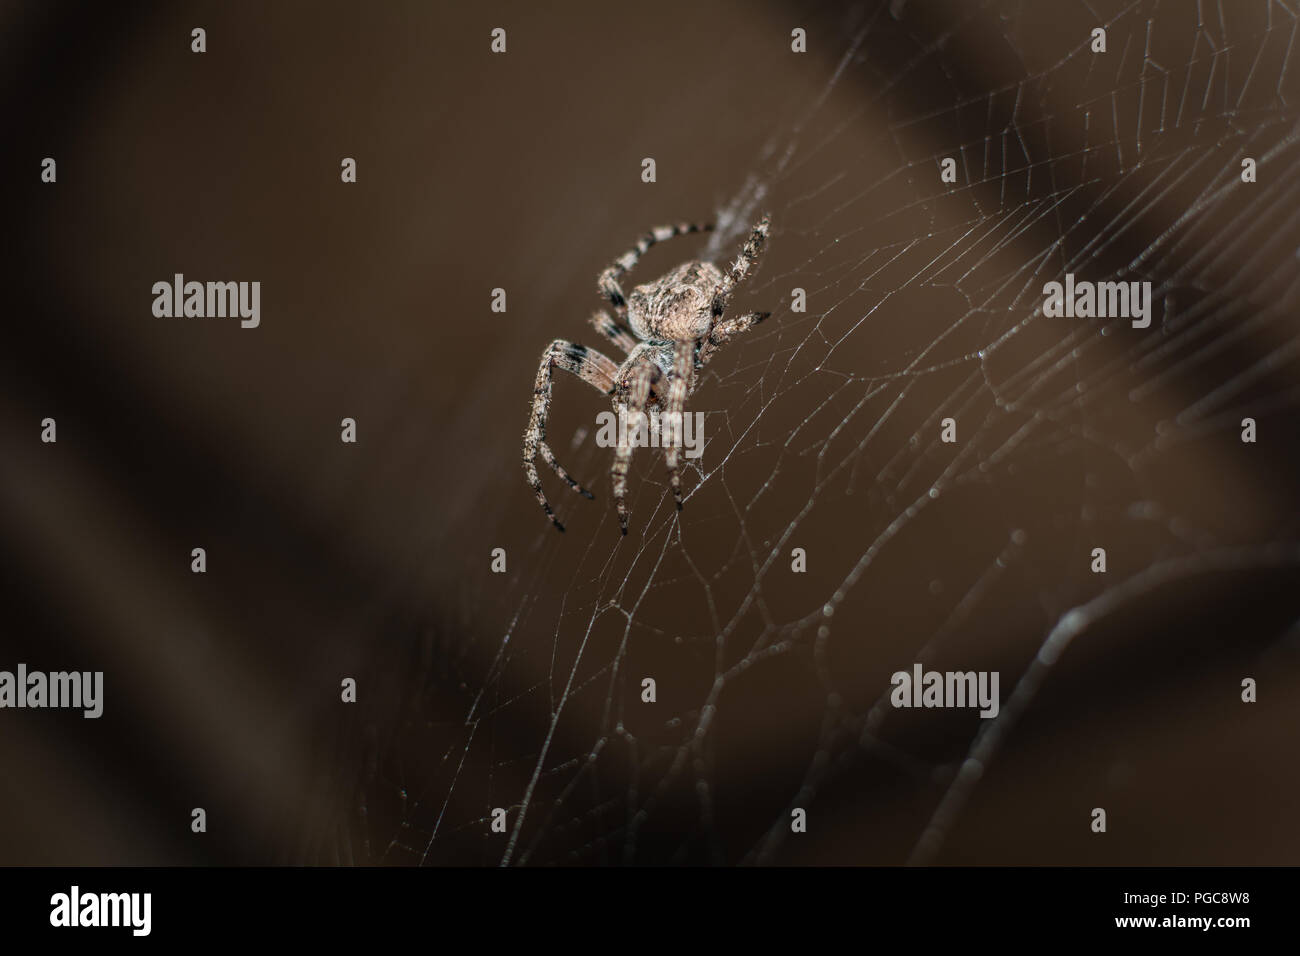 Spider Araneus (garden-spider) kind araneomorph spiders of the family of Orb-web spiders (Araneidae) on the web - Stock Image